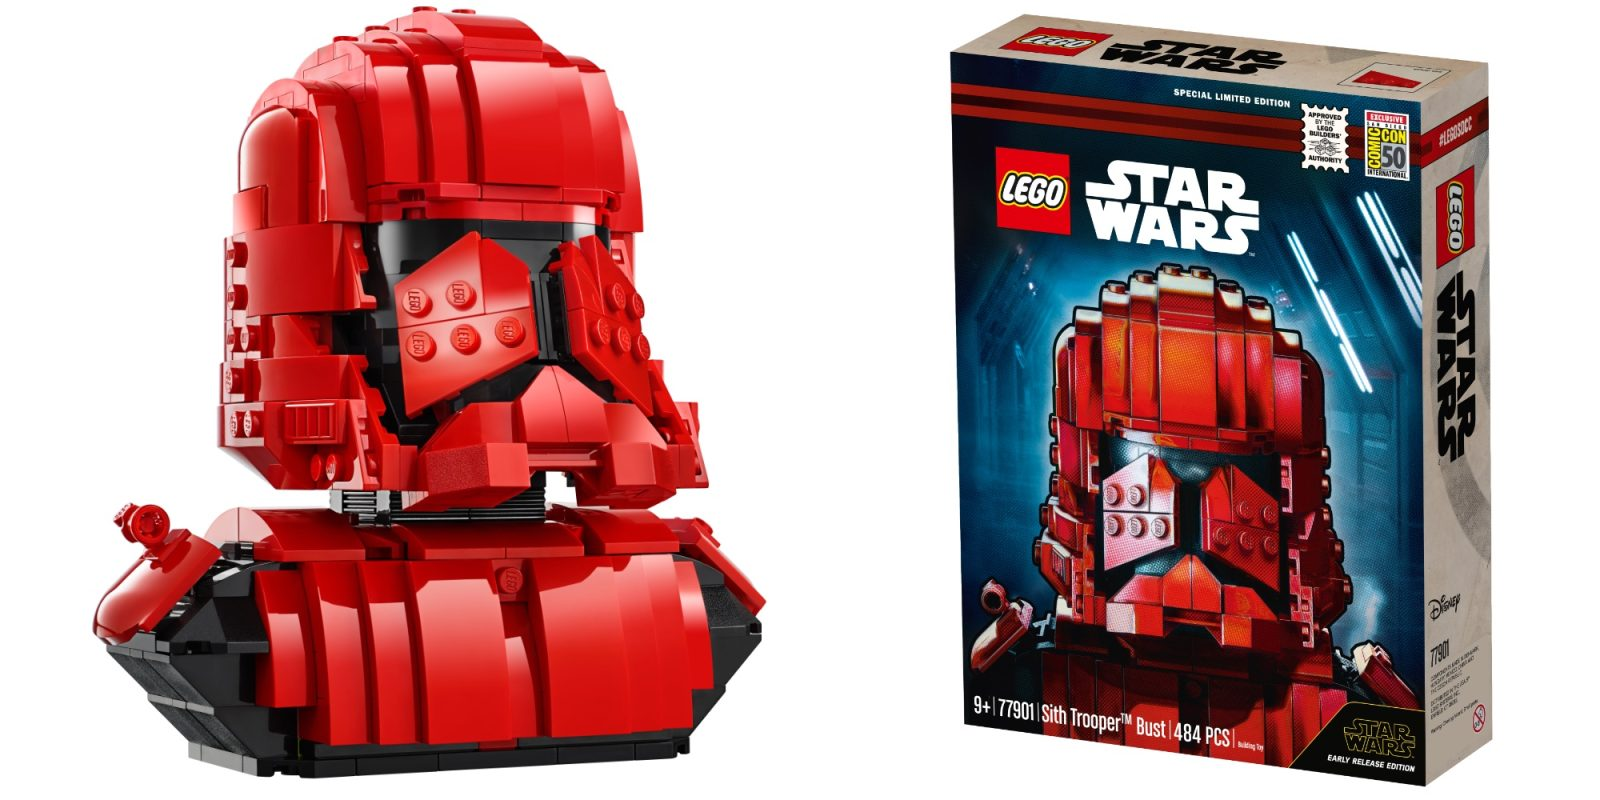 LEGO unveils 480-piece Sith Trooper Bust as first 'The Rise of Skywalker' set